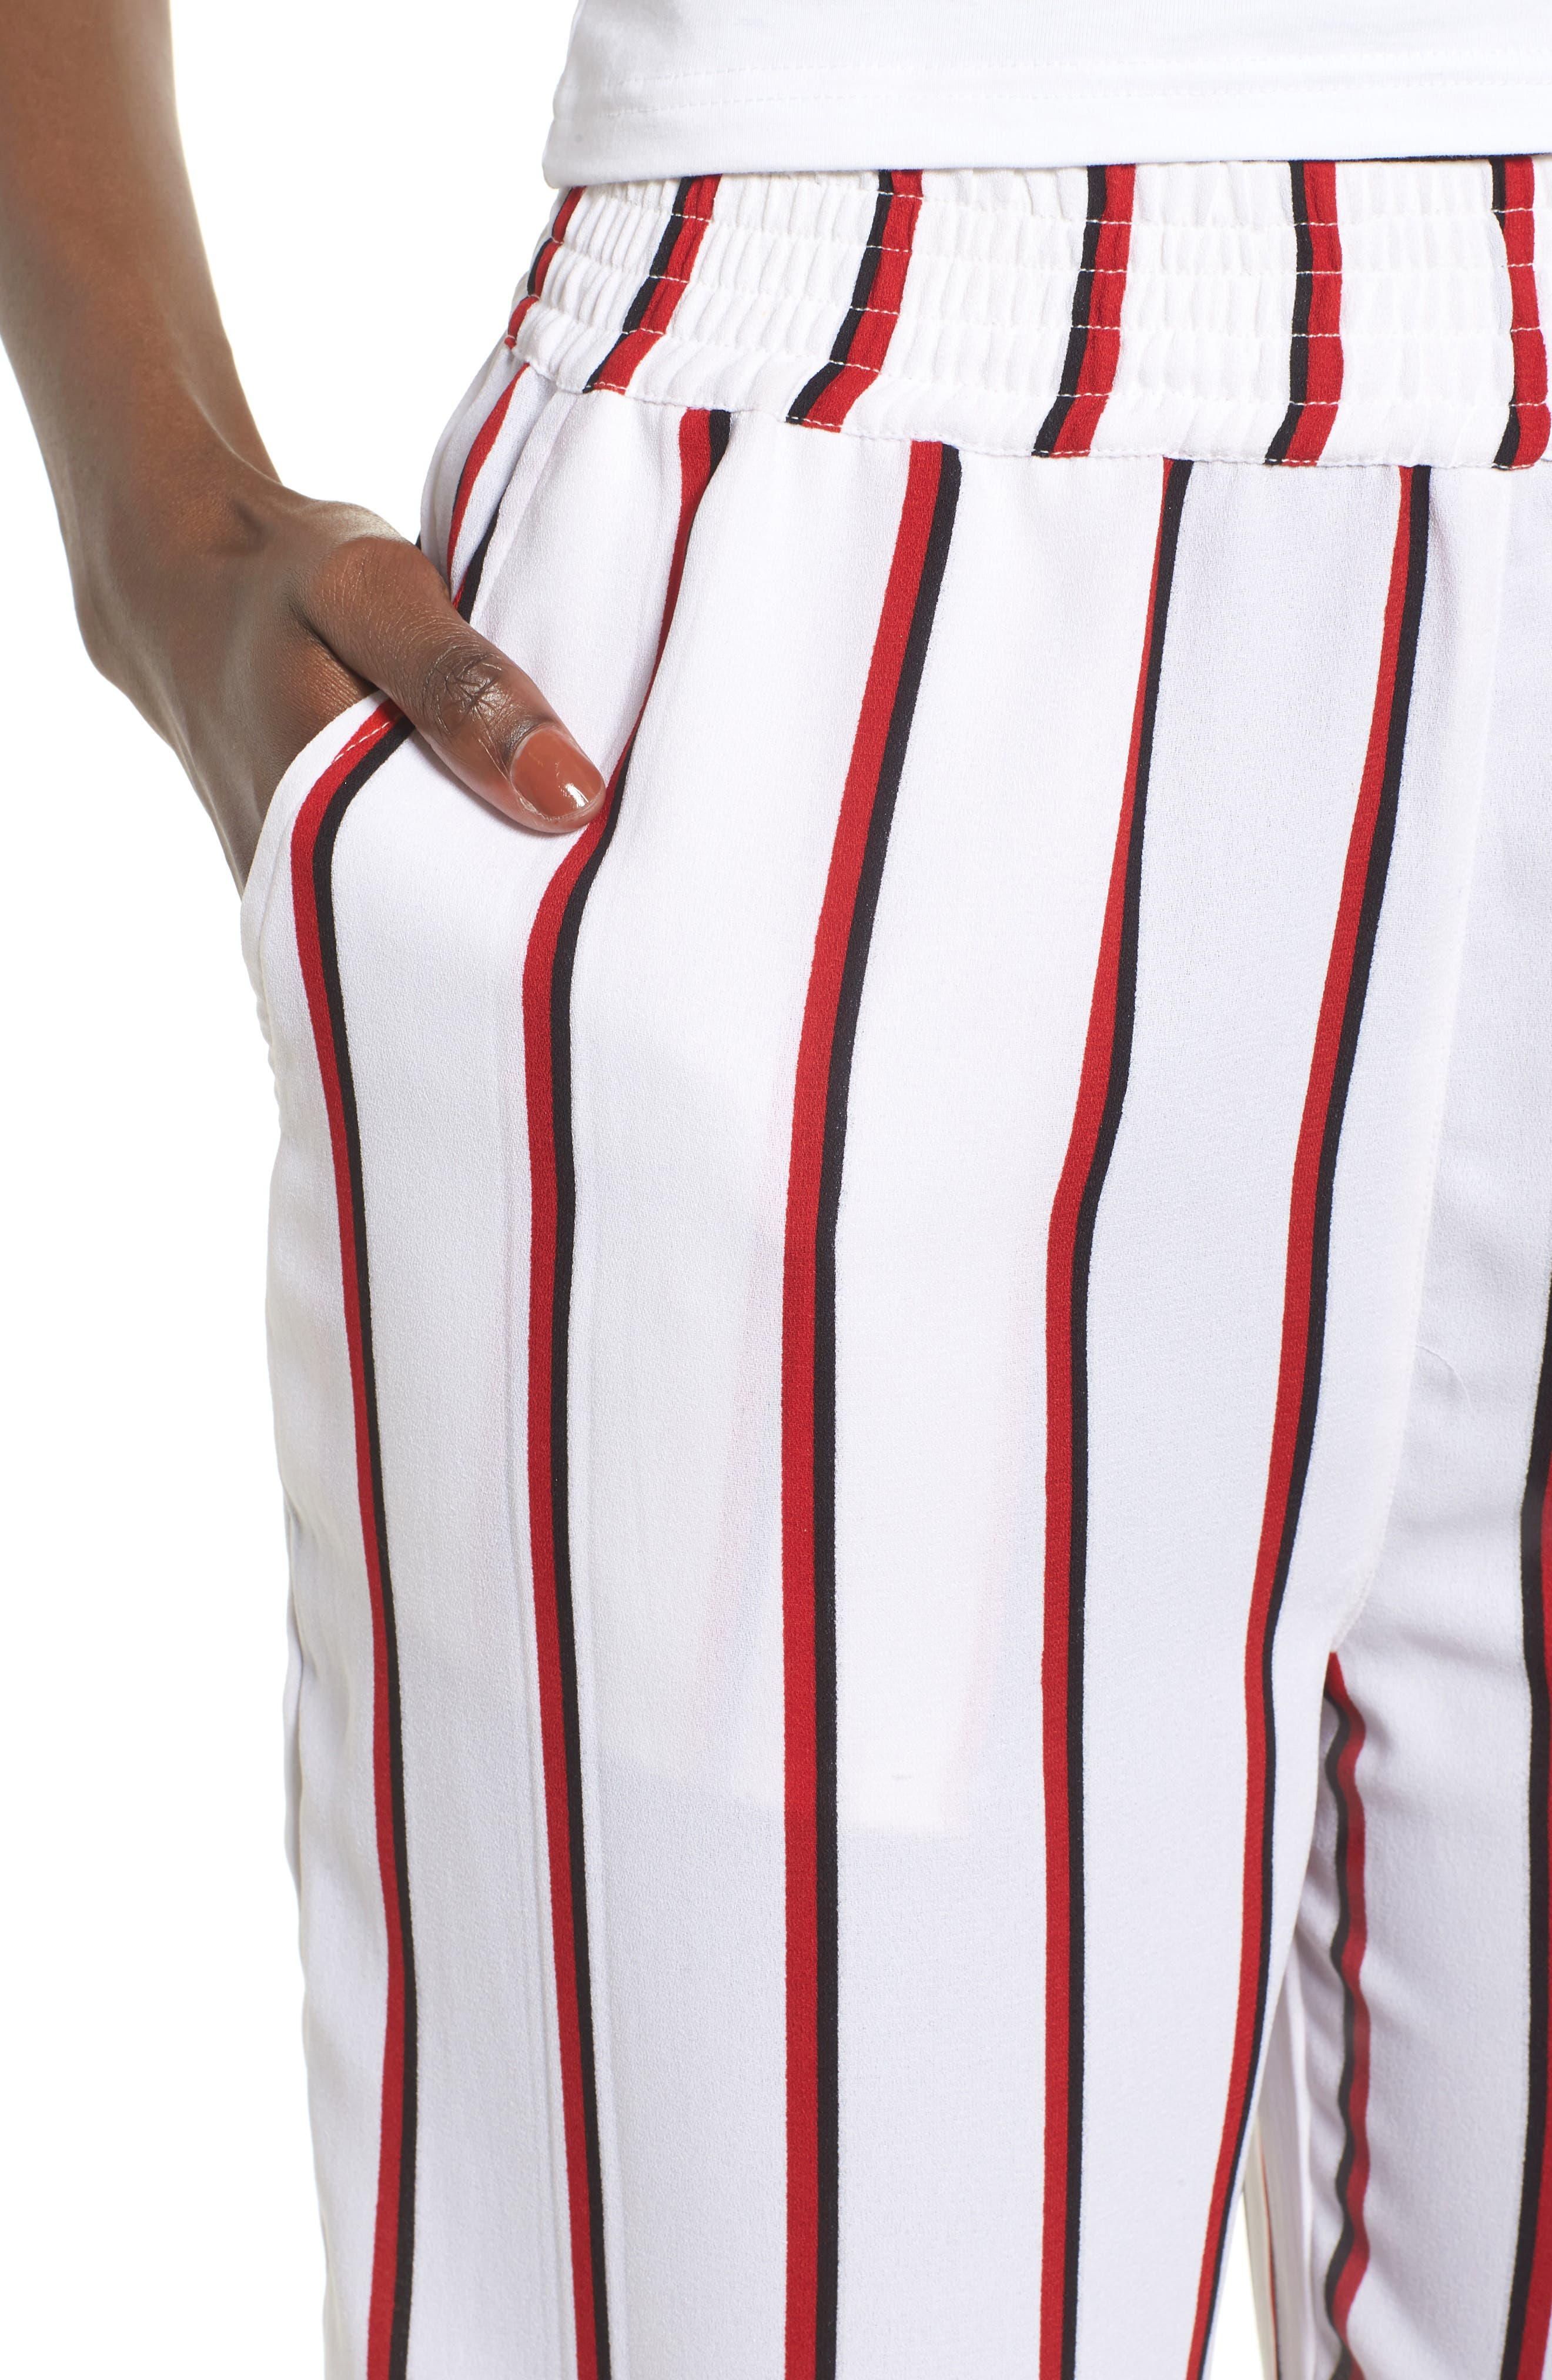 Counting Moons Stripe Culottes,                             Alternate thumbnail 4, color,